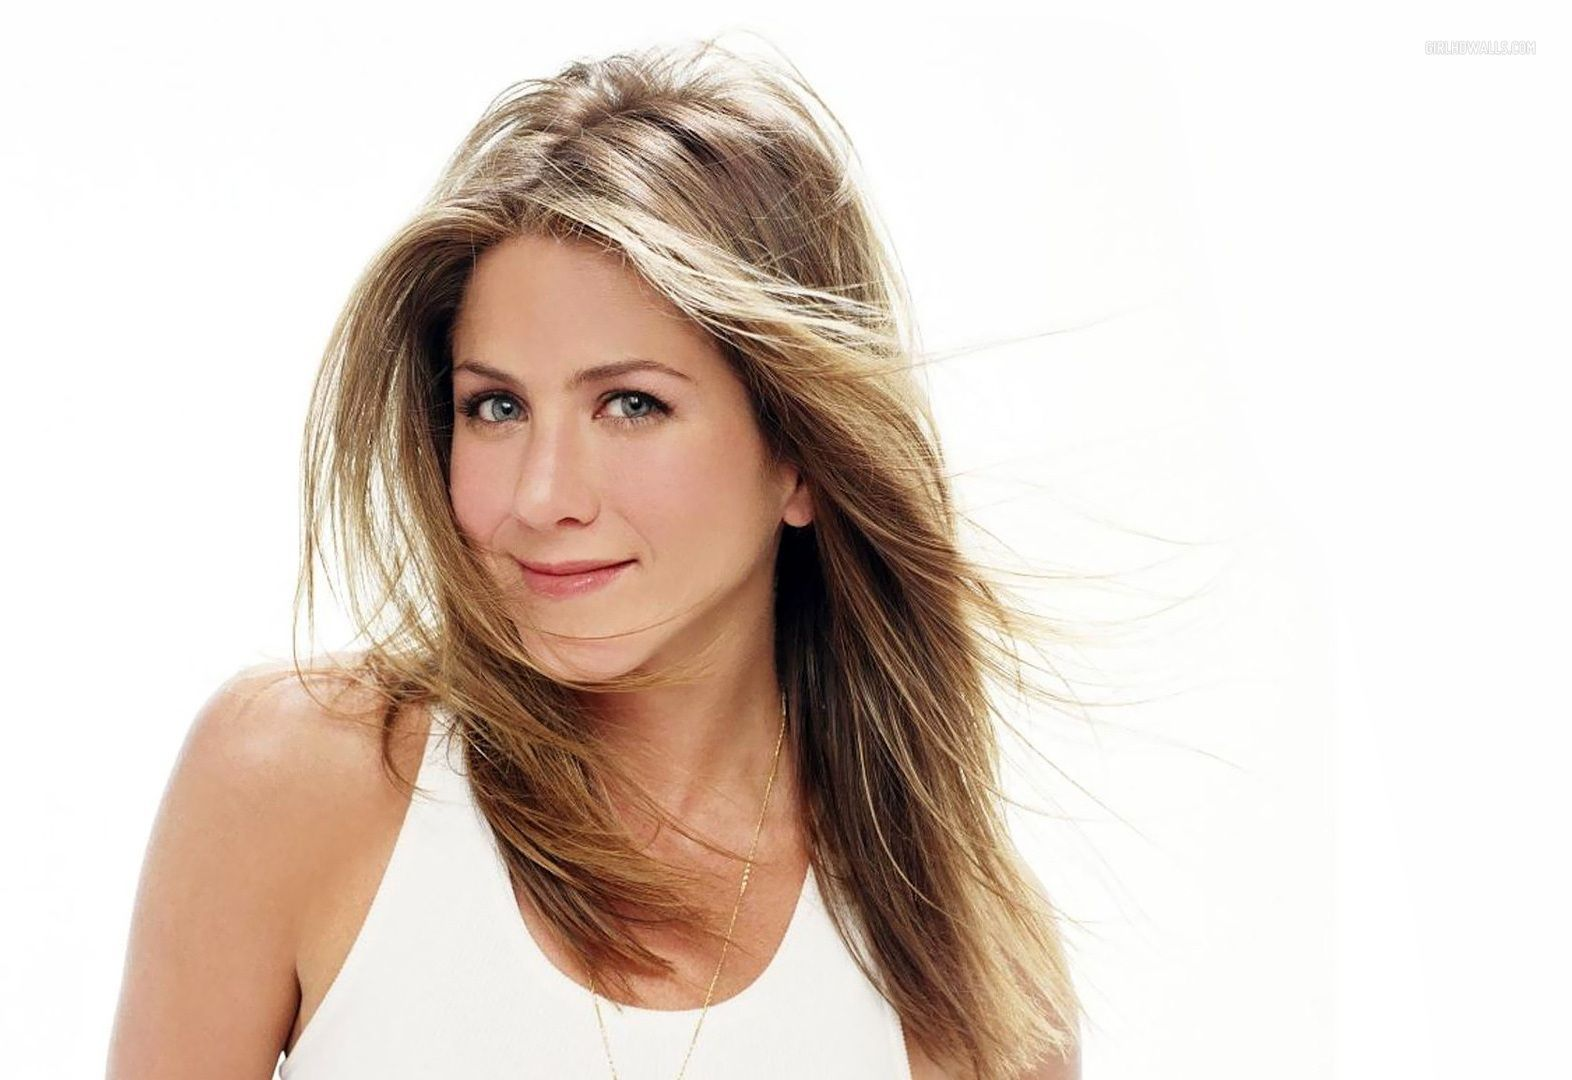 Aniston Awesome Photo – Jennifer Aniston Wallpapers, 1572x1080 px ...